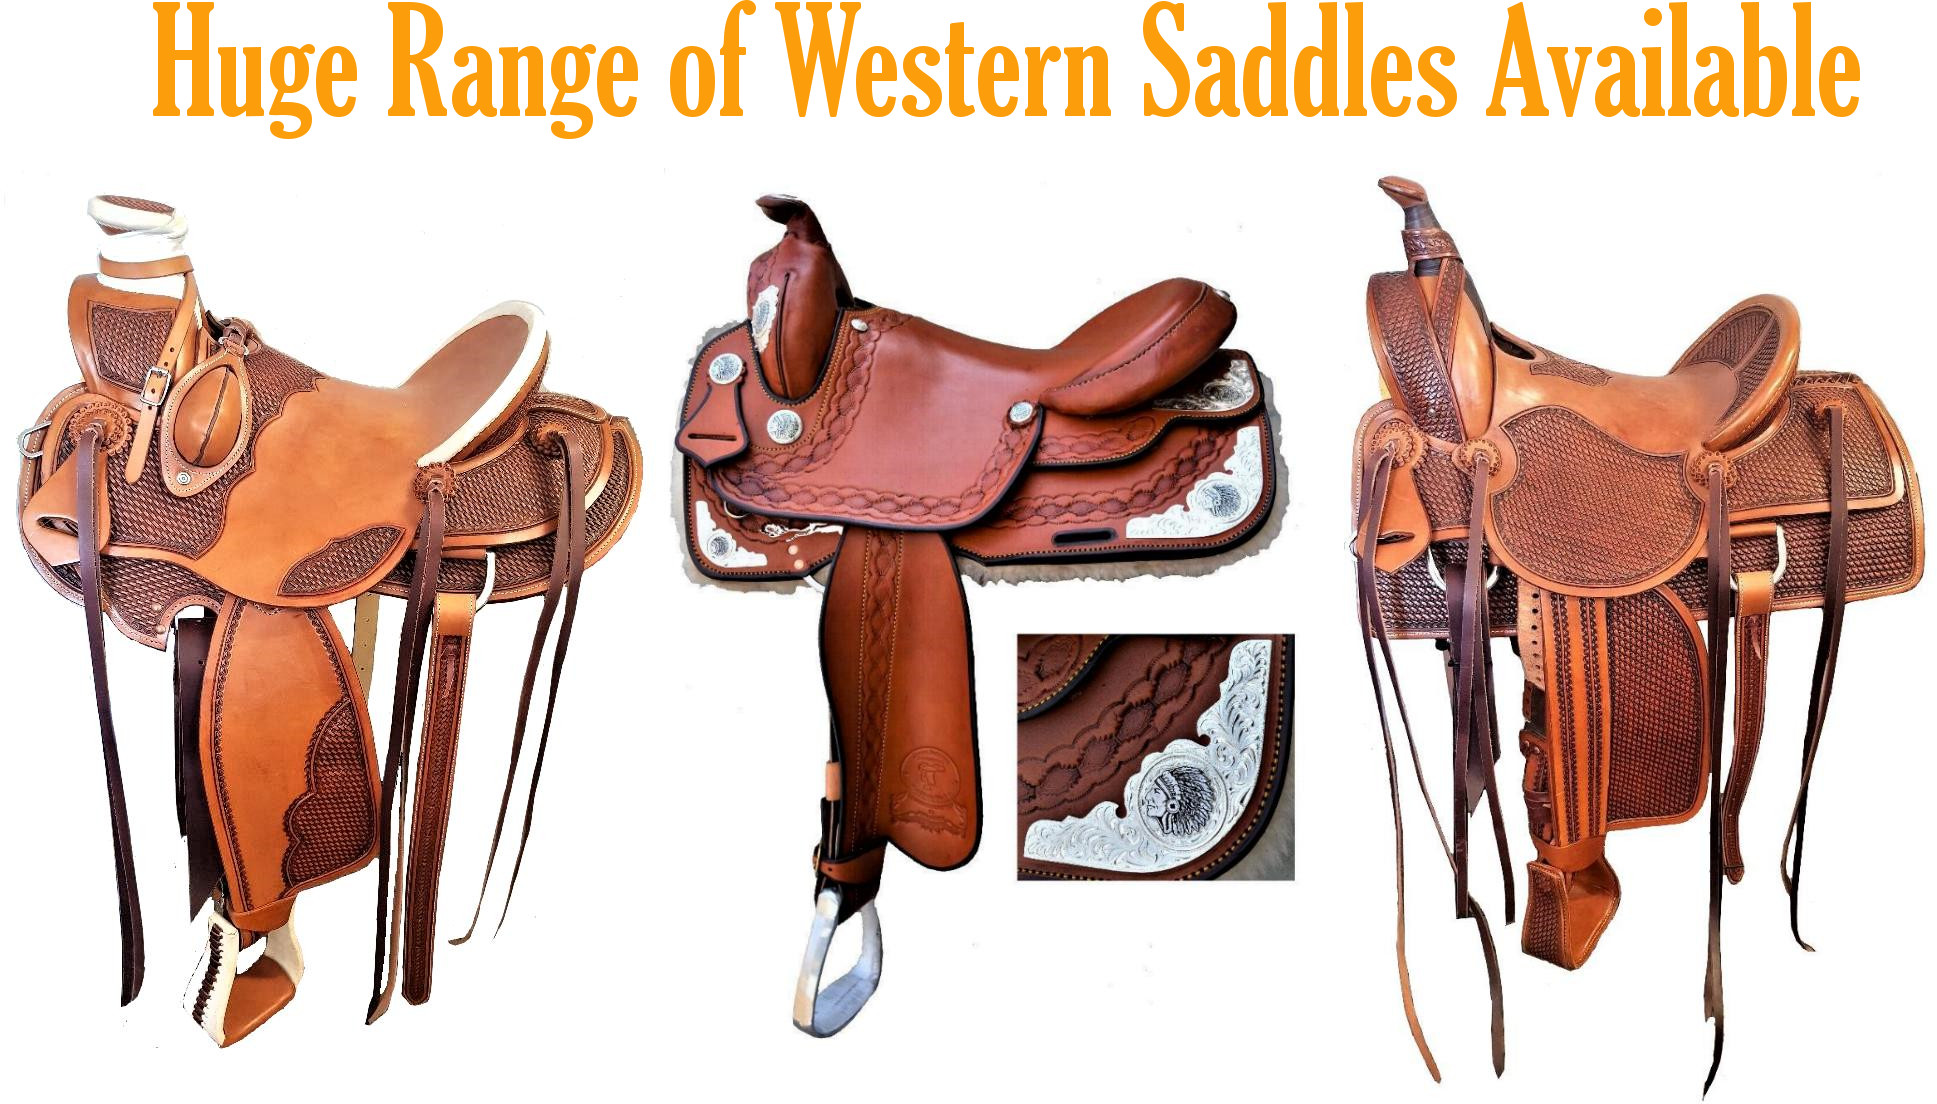 James Saddlery Australia